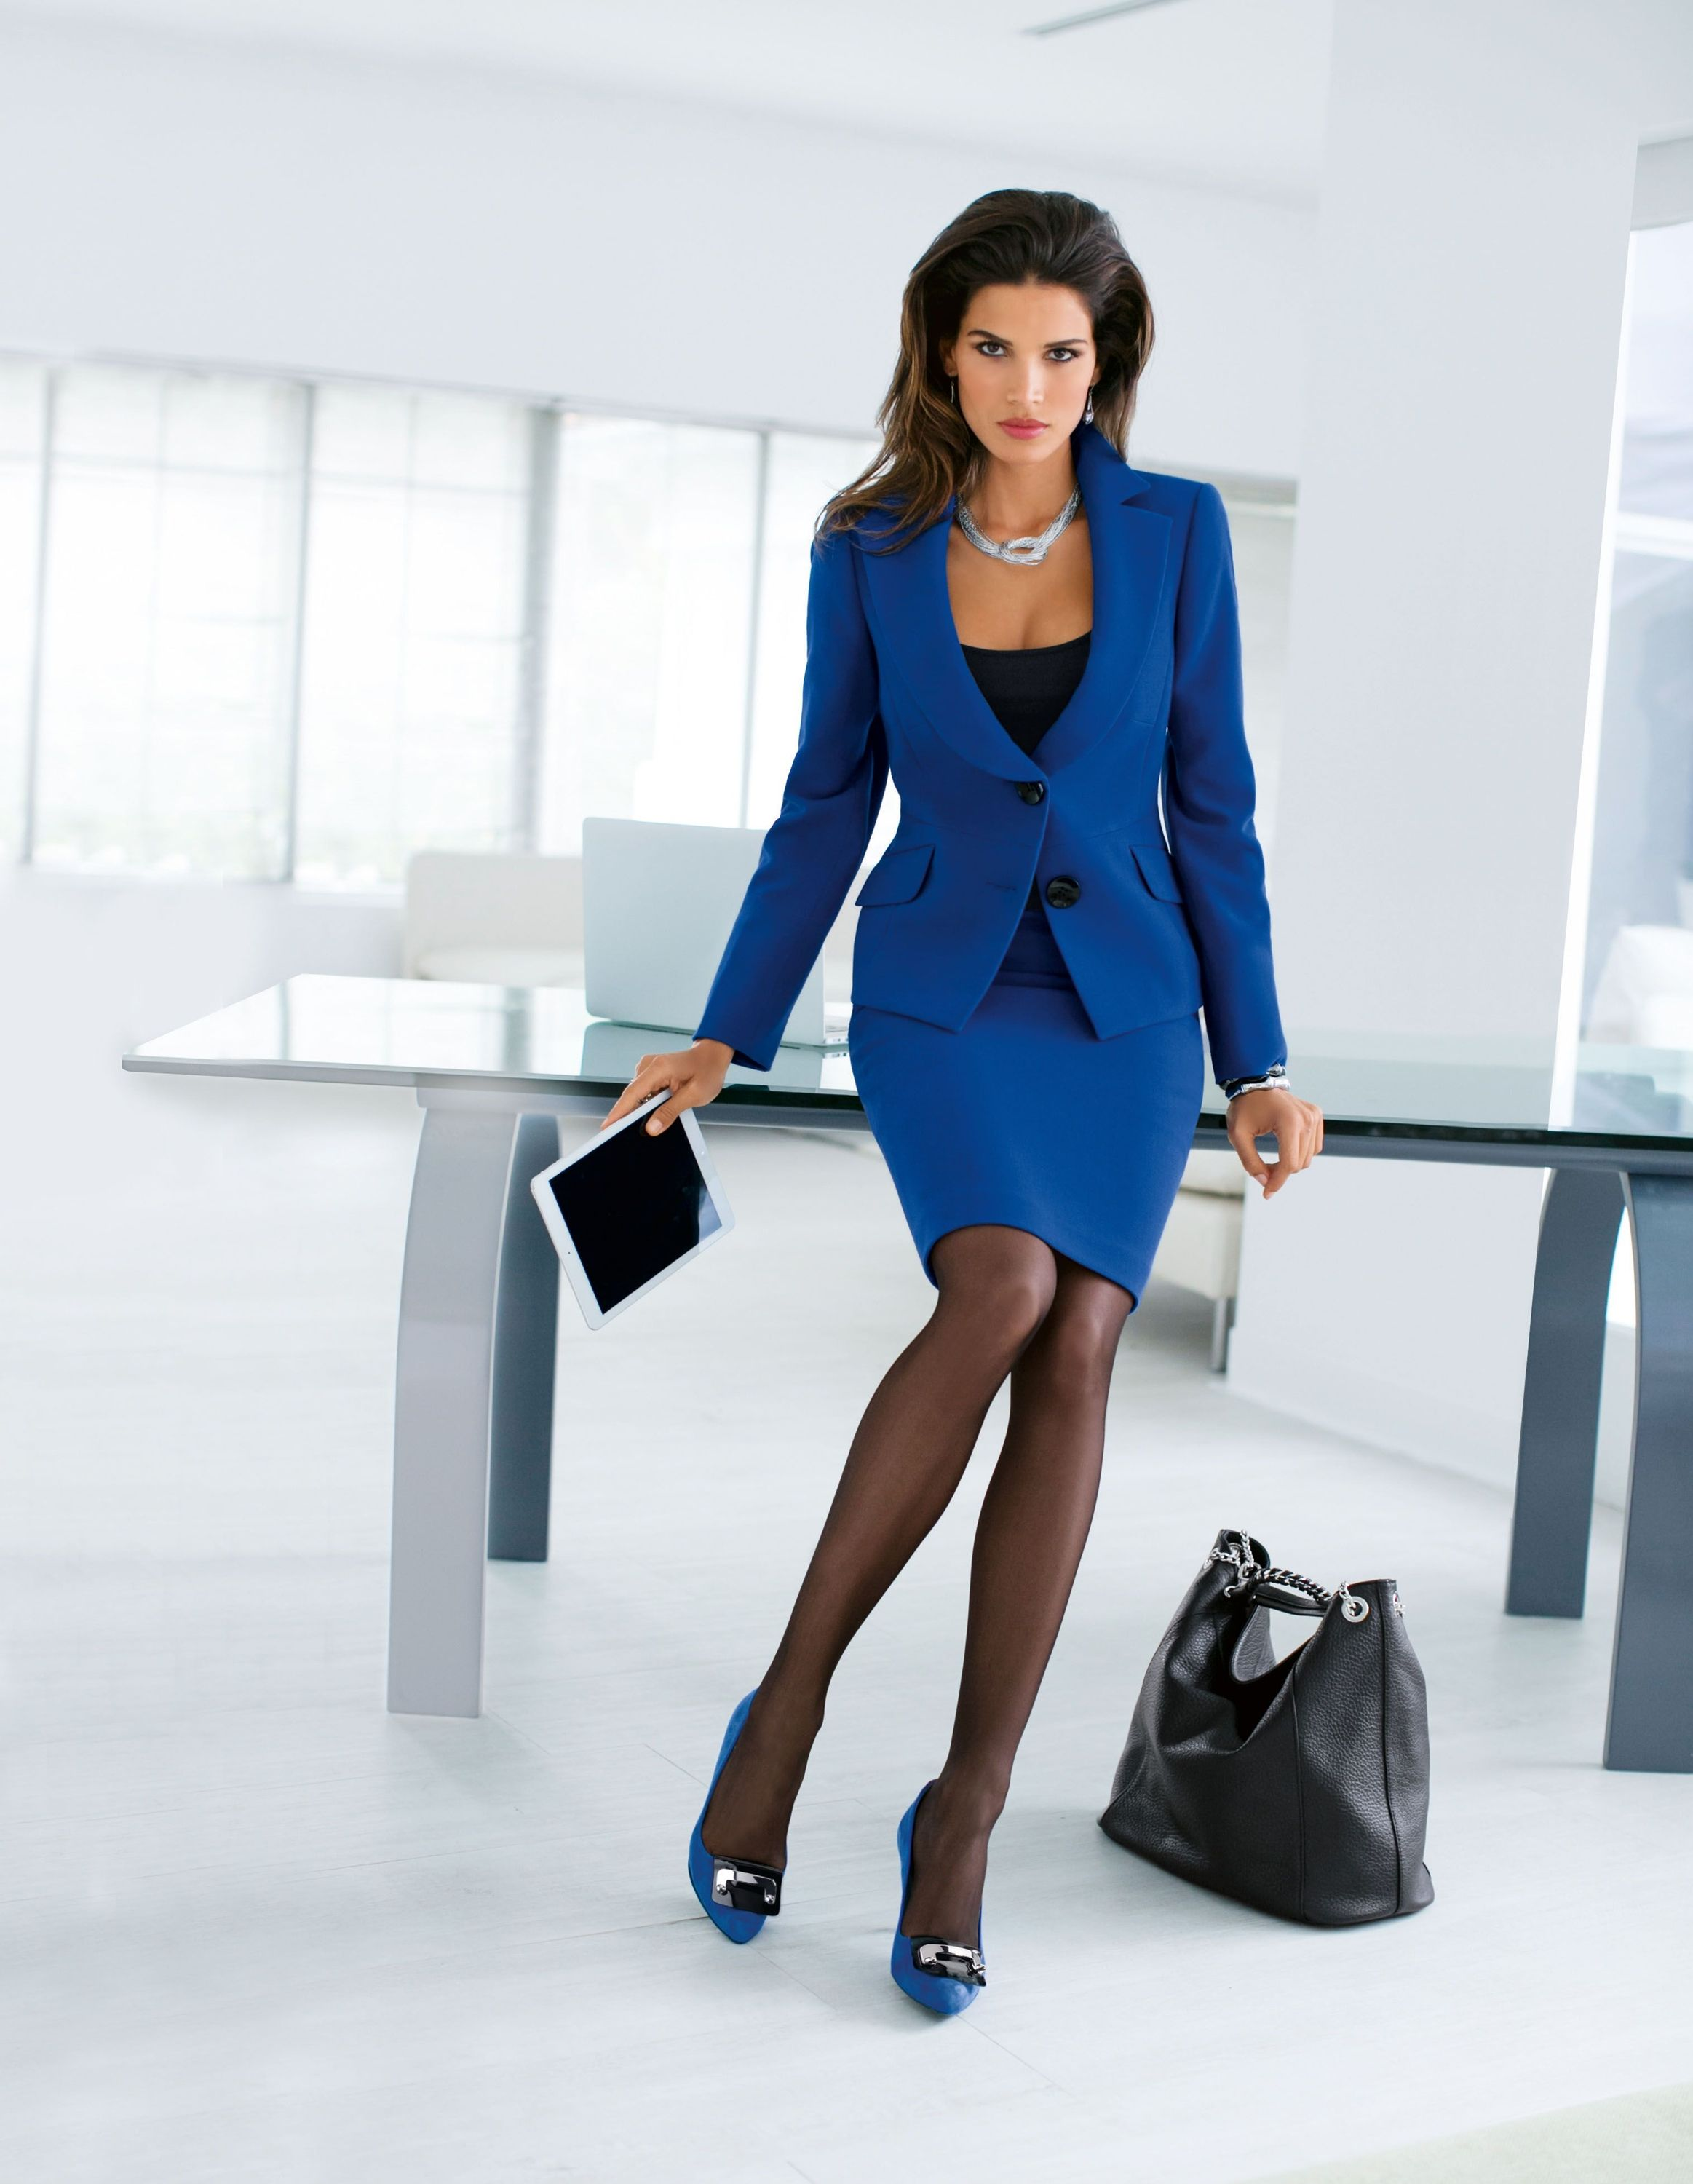 Colored suit to stand out. Nylons (not tights). Business ...